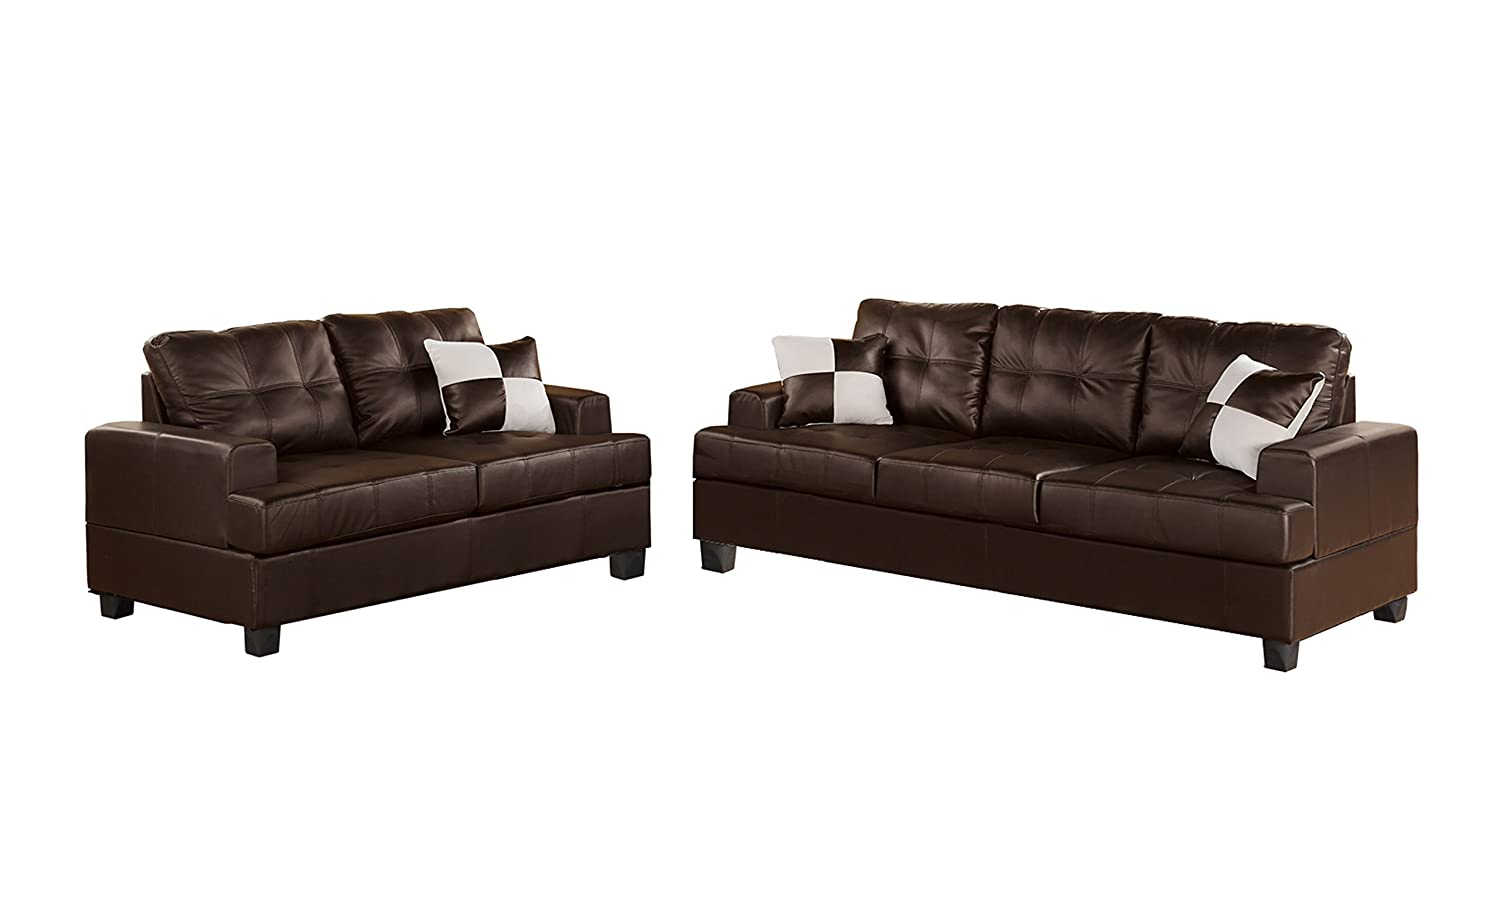 espresso bonded leather reclining sofa loveseat set coaster reviews 2 piece accent pillows living